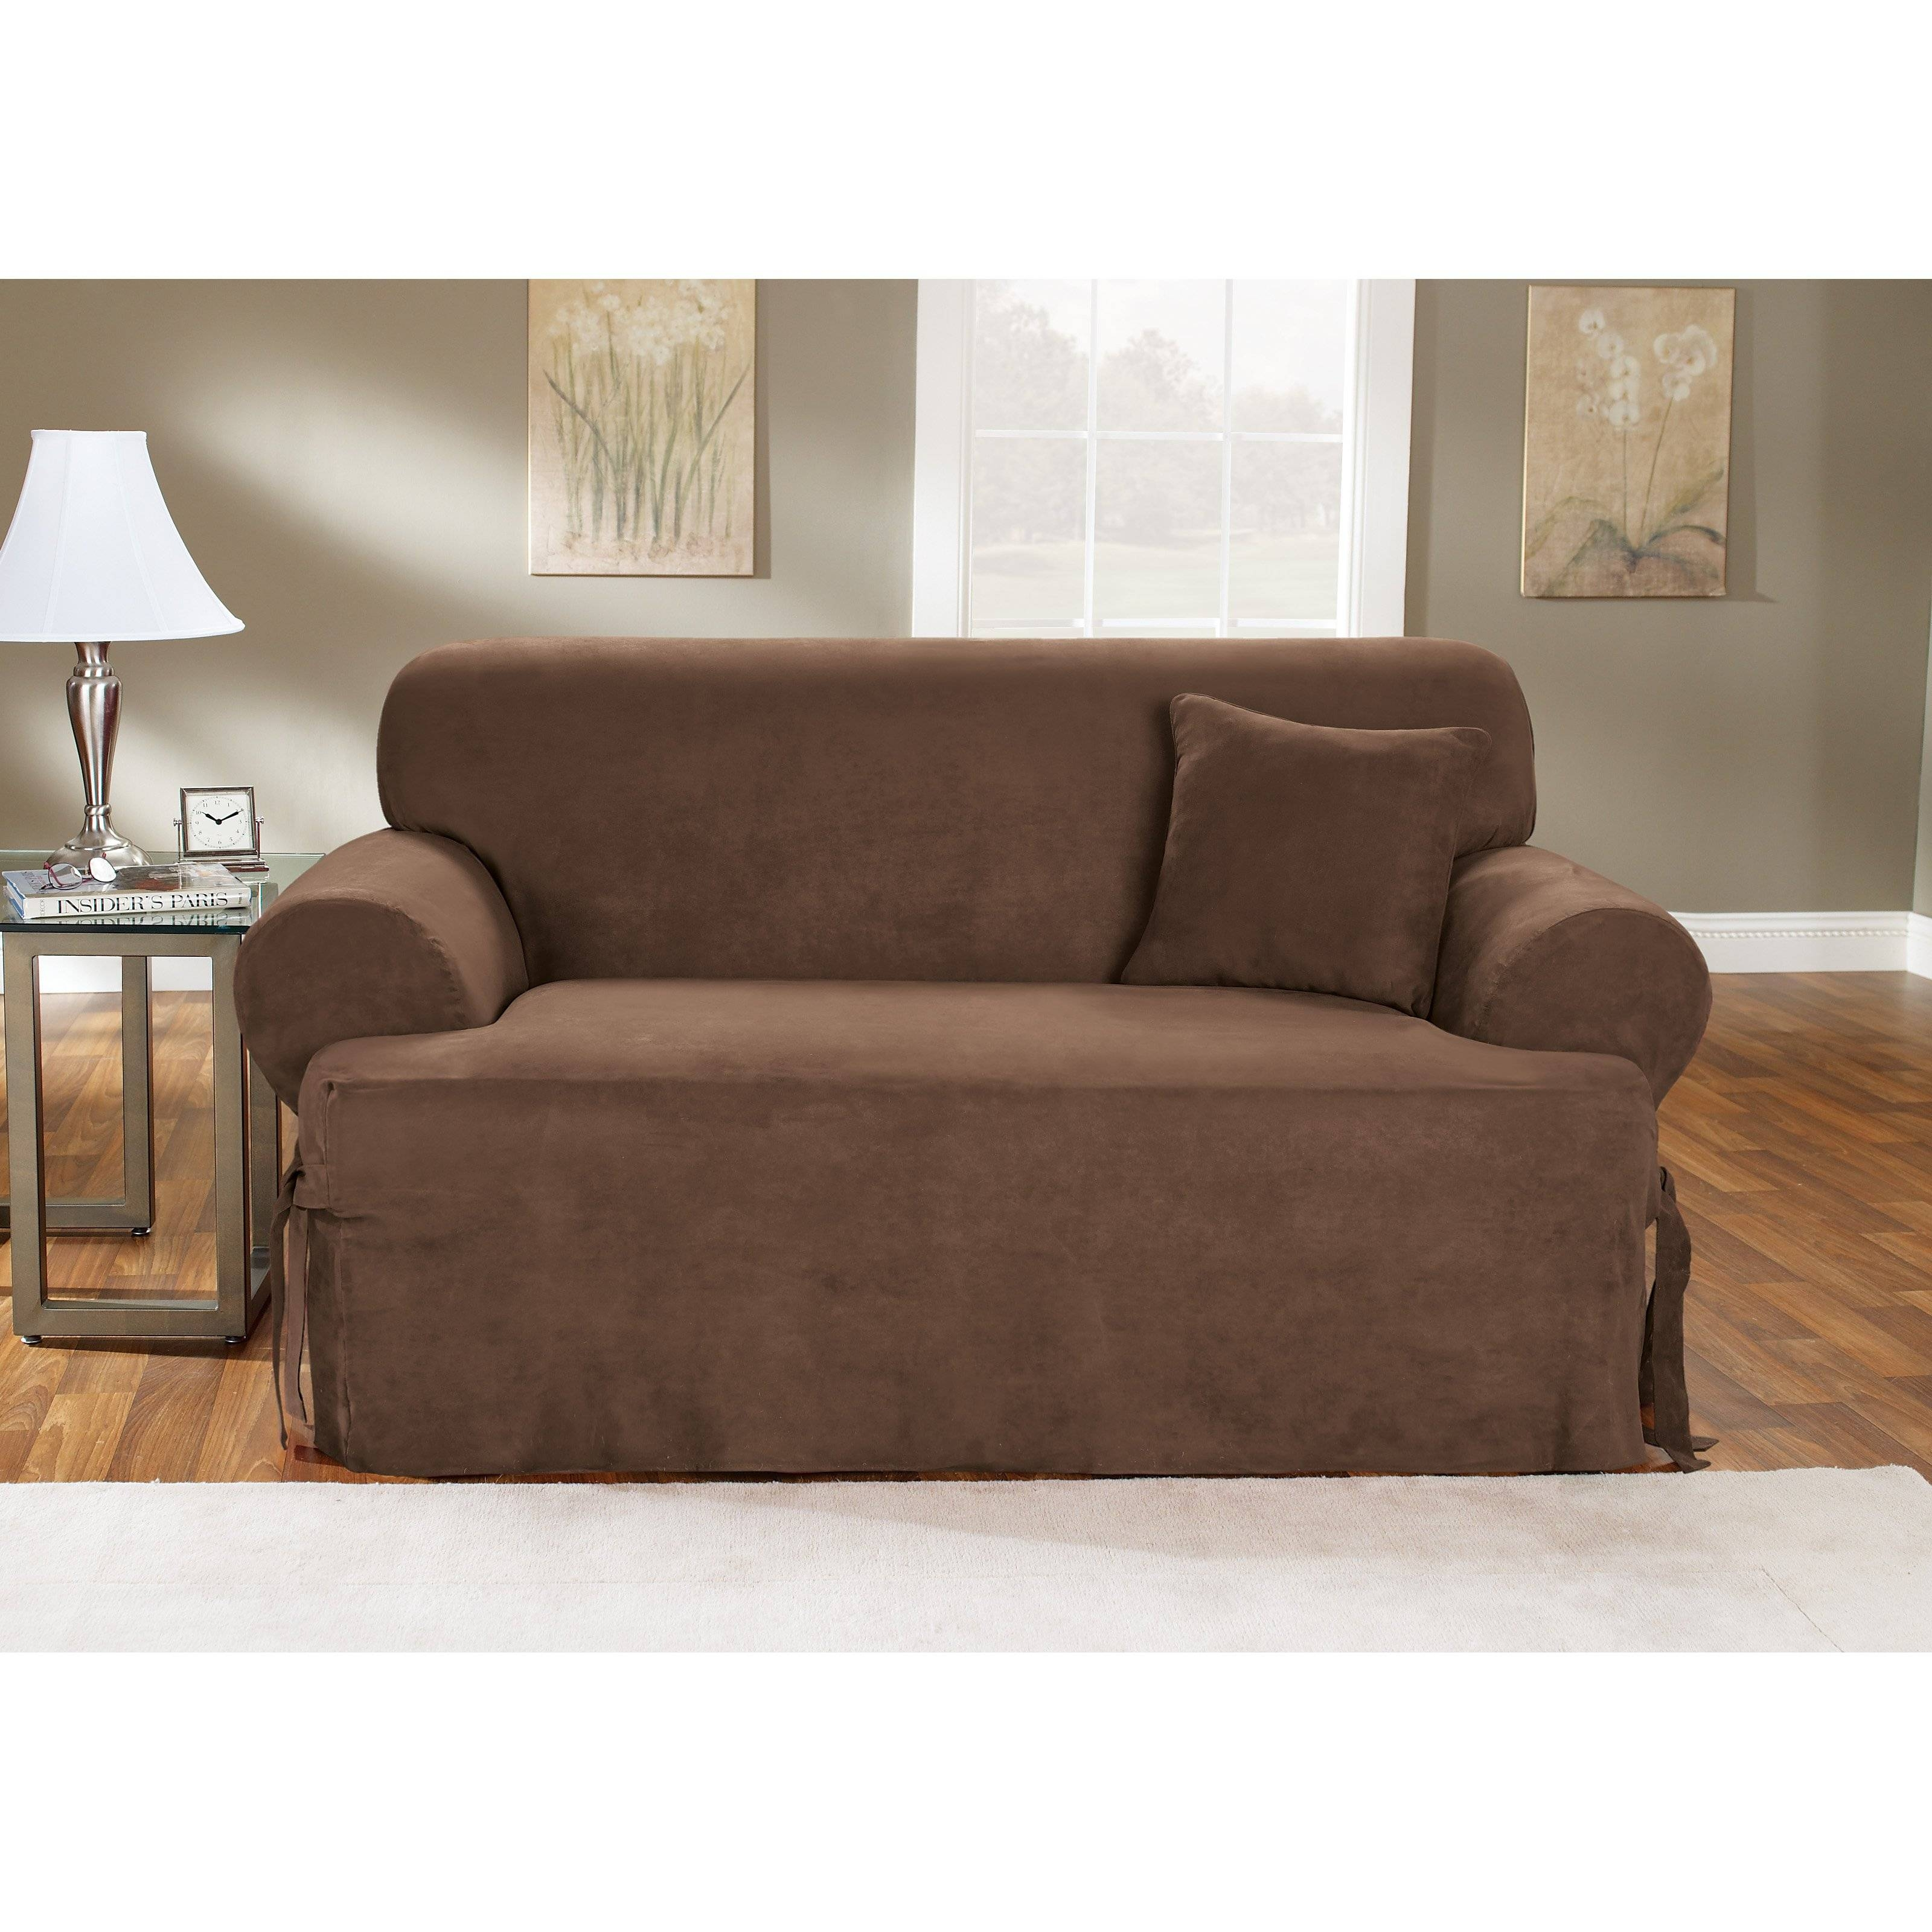 Sure Fit Stretch Pique T-Cushion Two Piece Sofa Slipcover | Hayneedle intended for 2 Piece Sofa Covers (Image 26 of 30)